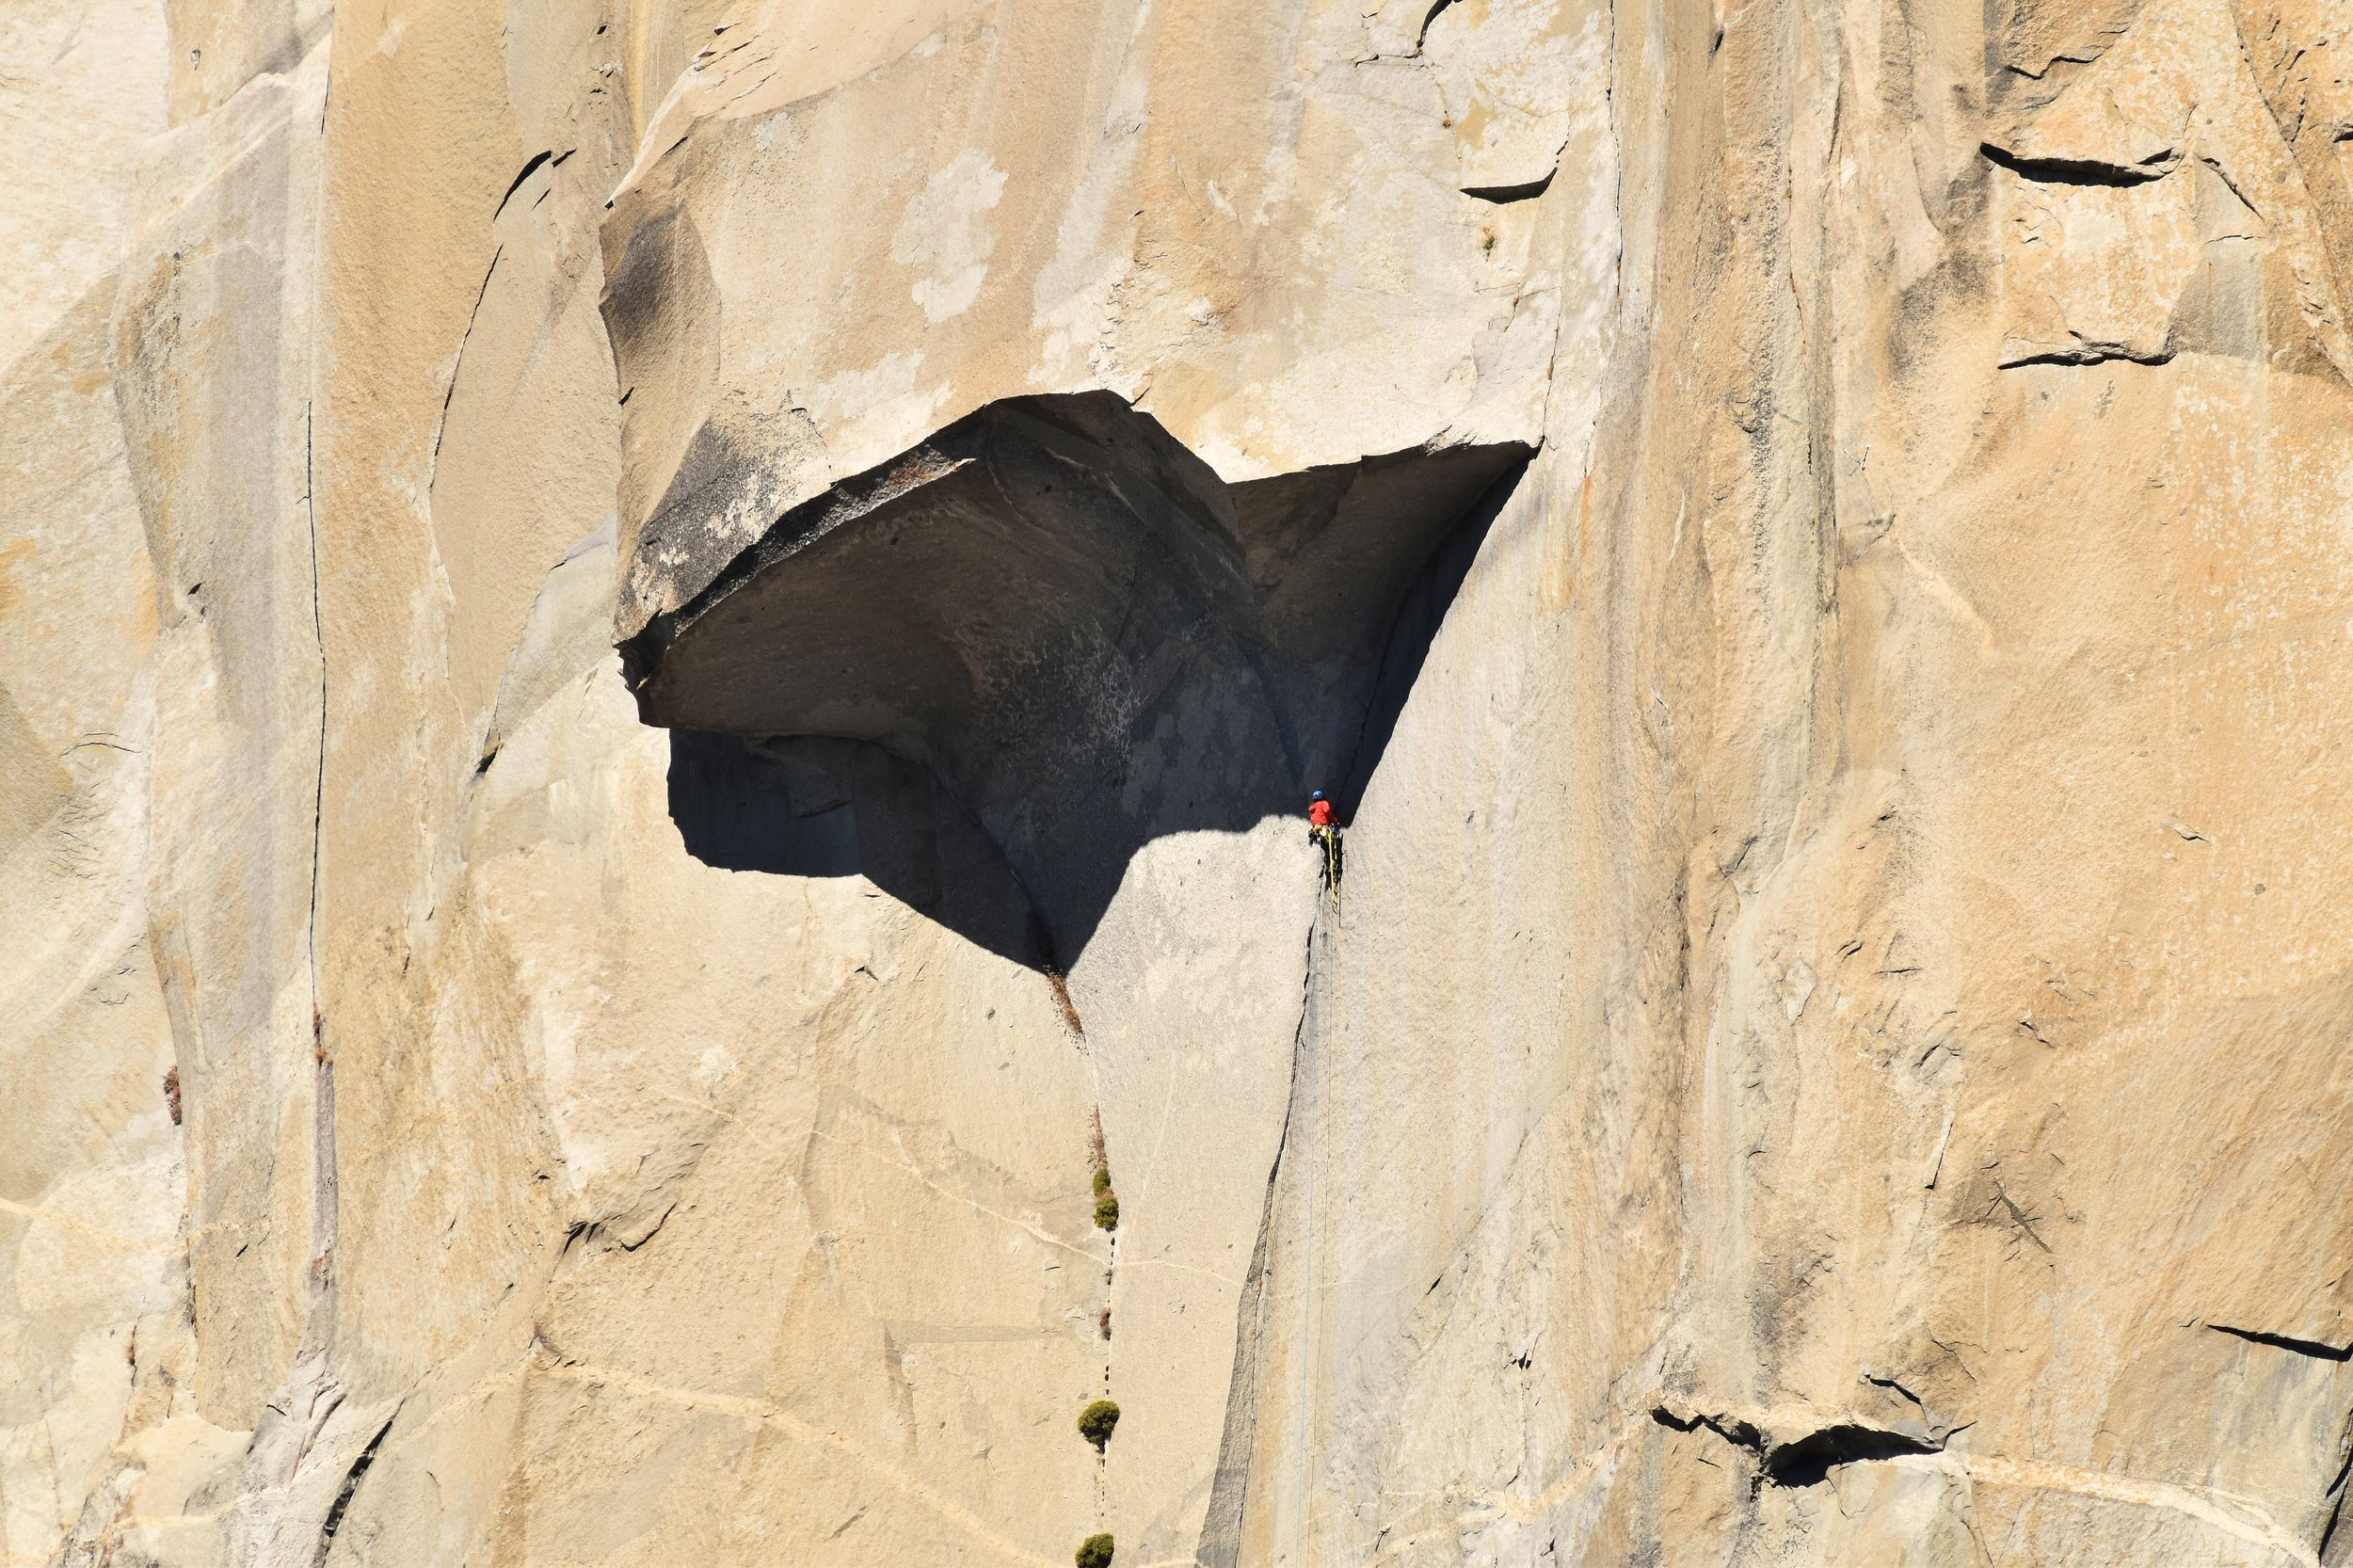 Mike and Zach climbing the Great Roof on the Nose of El Capitan. The next pitch, Pancake Flake, is just above the right side of the roof. Photo by Tom Evans / El Cap Report.